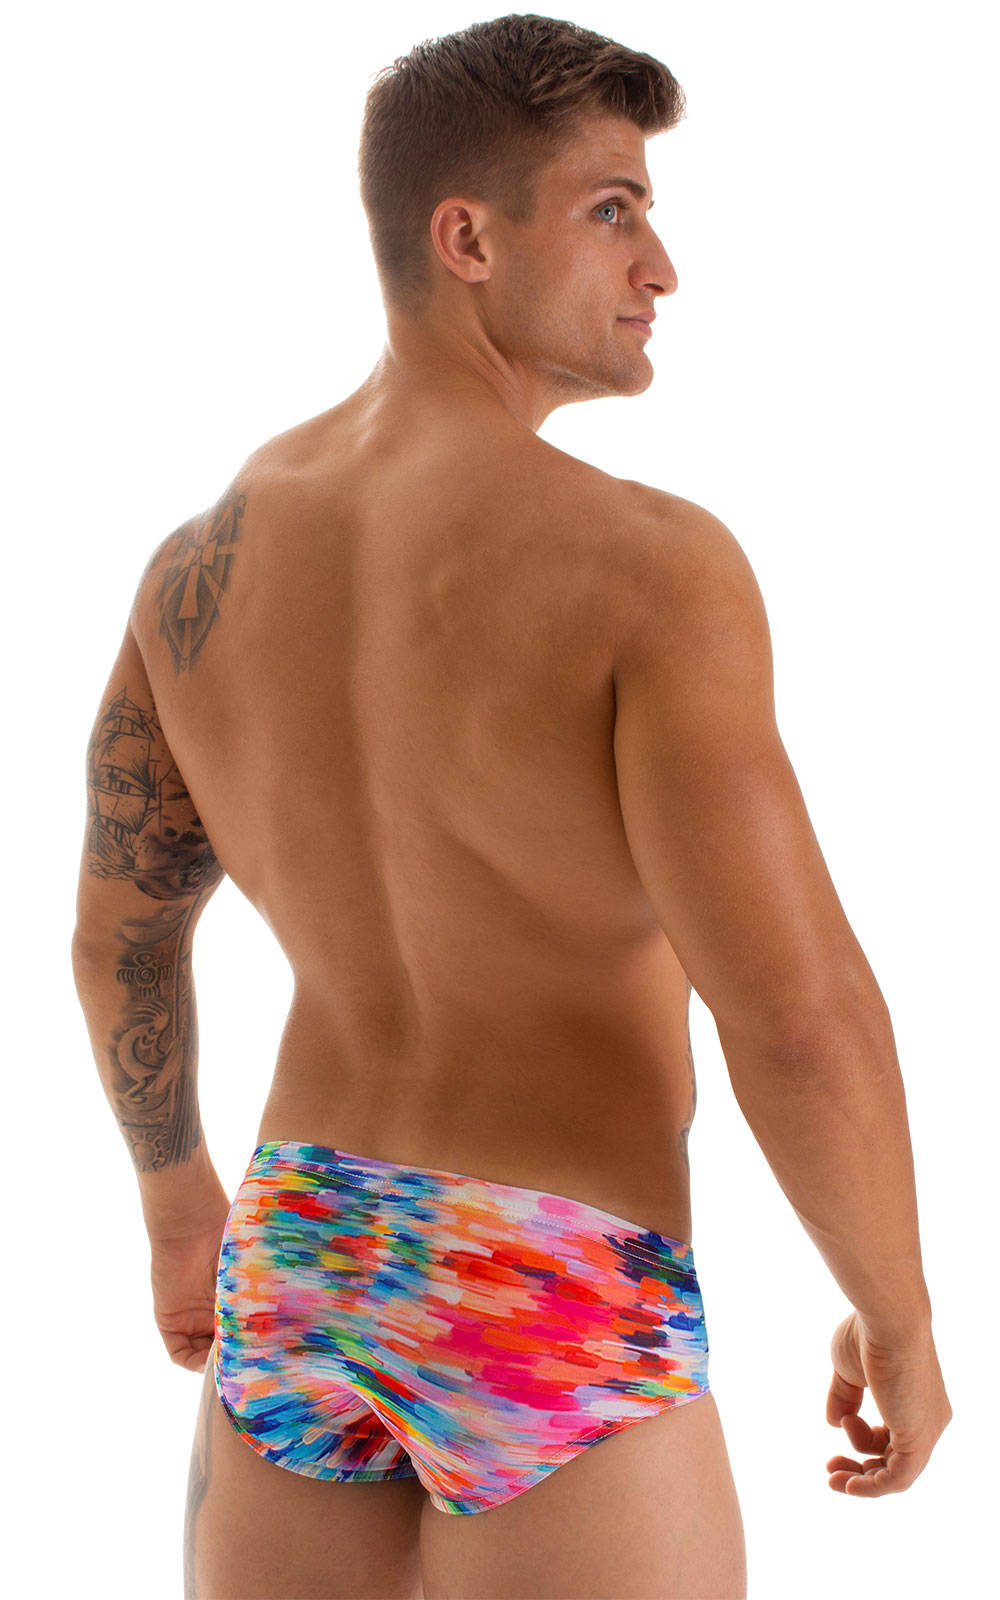 Pouch Brief Swimsuit in Watercolor Strokes 5